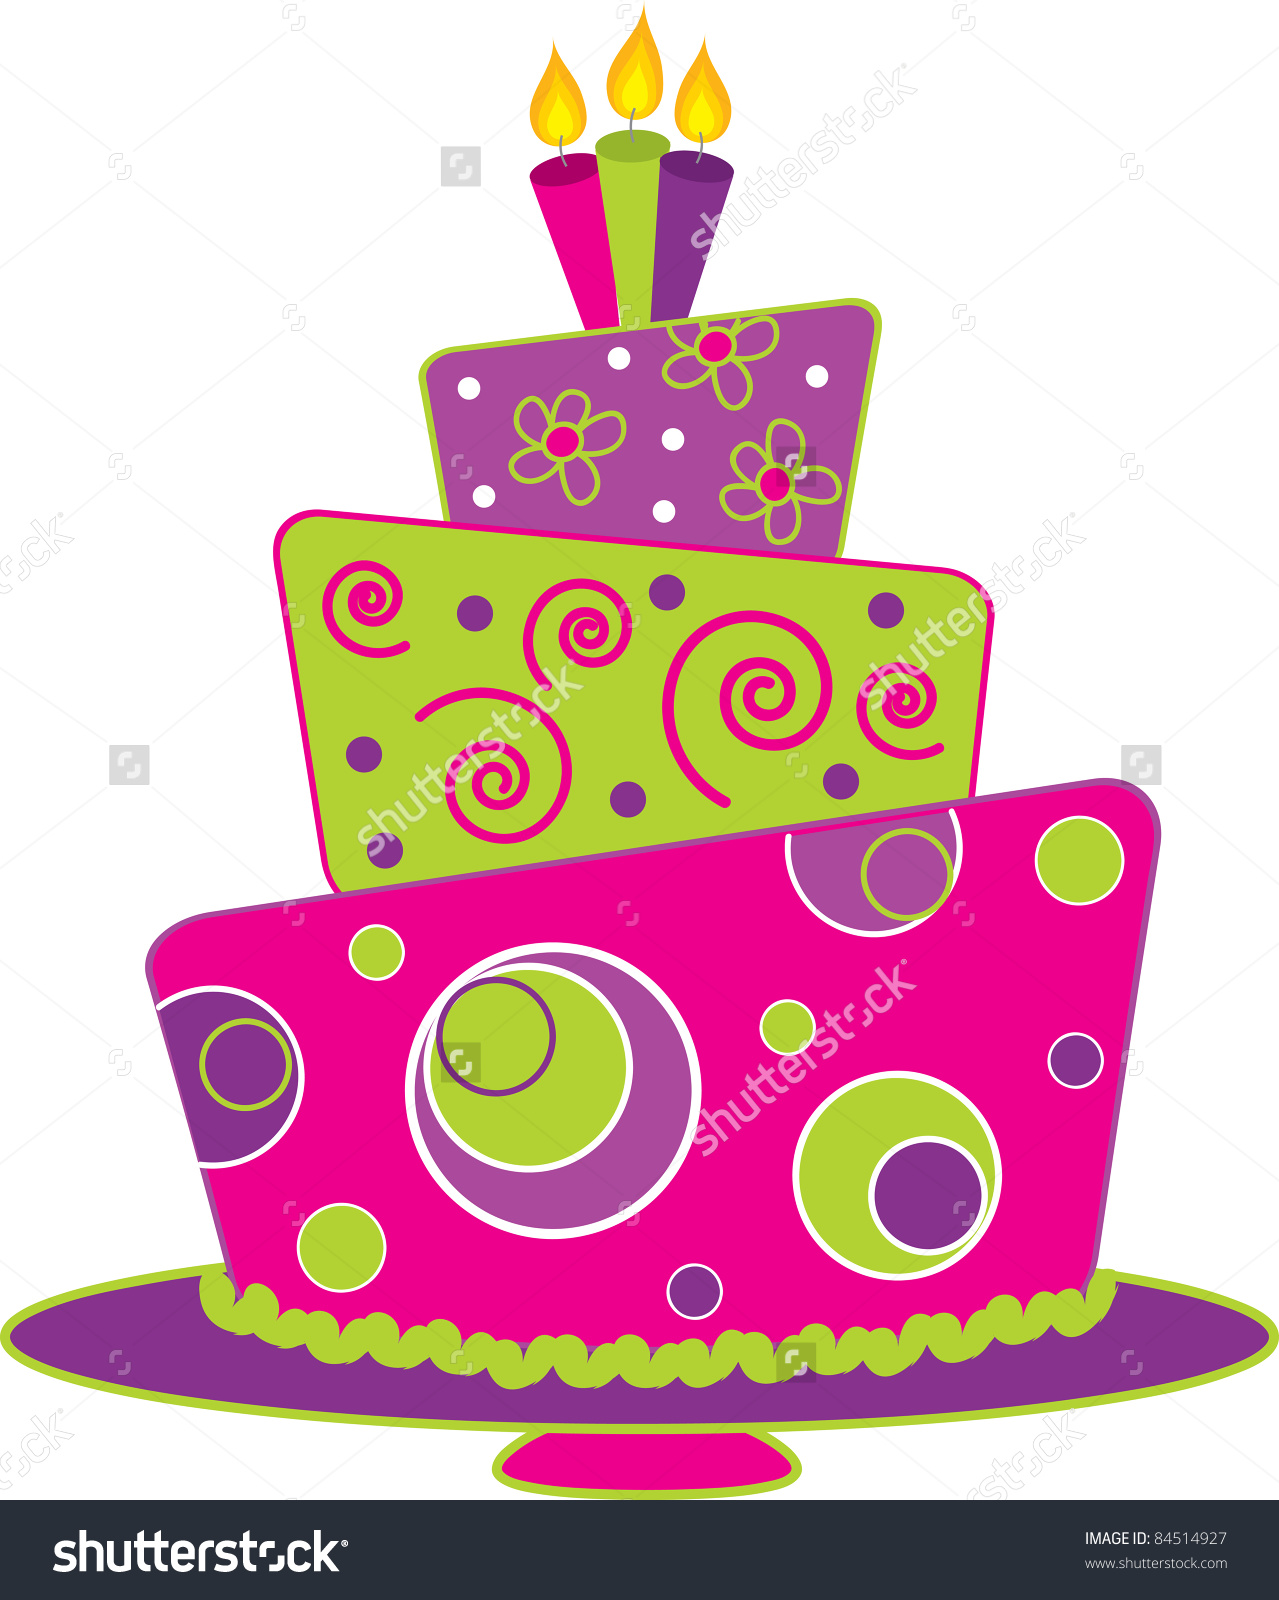 Clip Art Illustration Fancy Cake Crooked Stock Illustration.